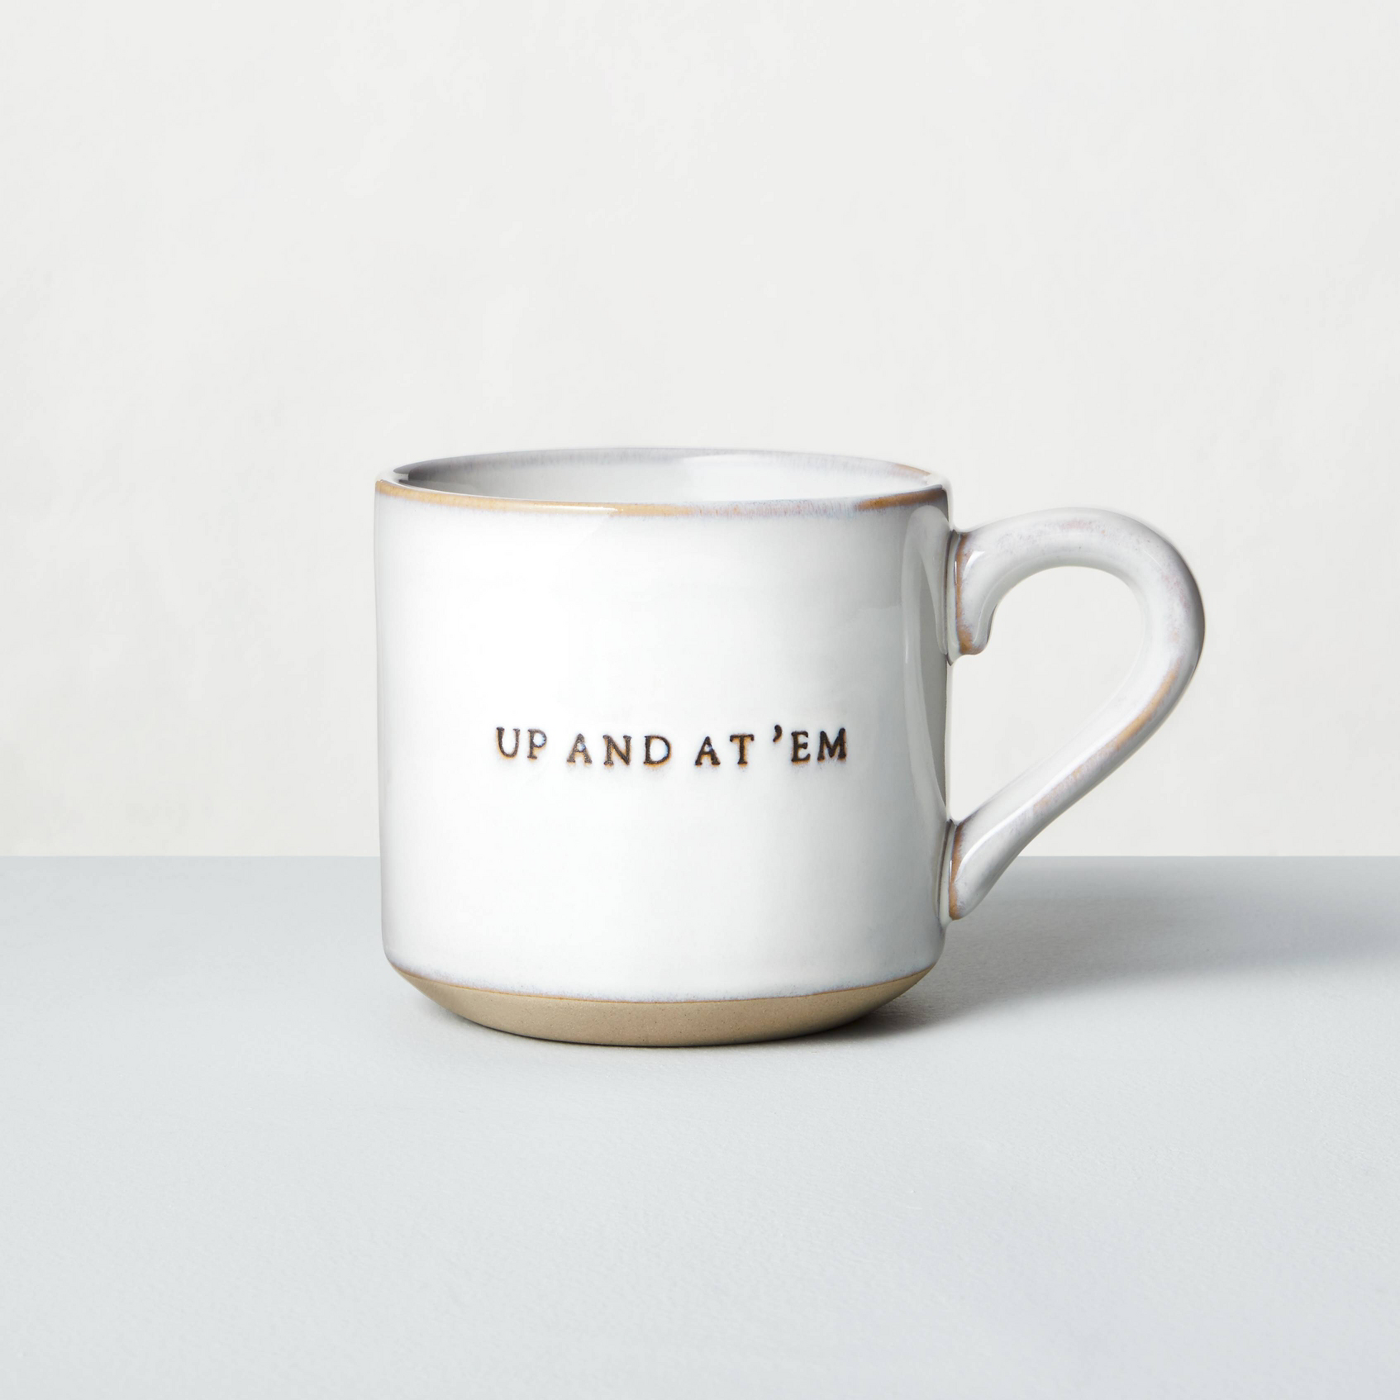 White stone mug with up and at em etched on it